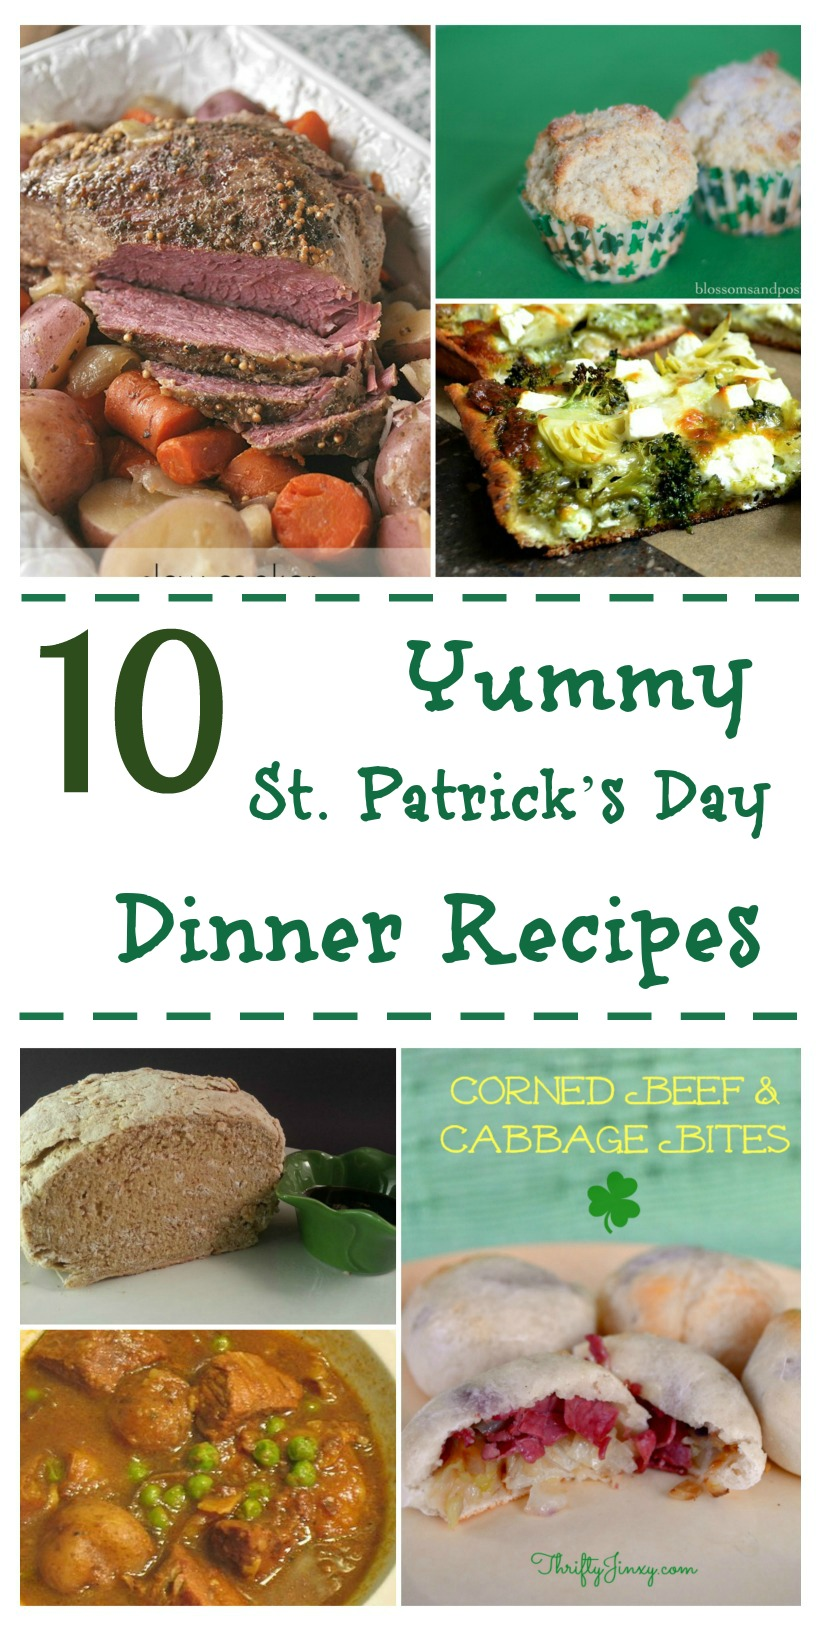 Looking for some delicious dinner ideas for St. Patrick's Day? Check out our 10 Yummy St. Patrick's Day Dinner Recipes Round Up here!